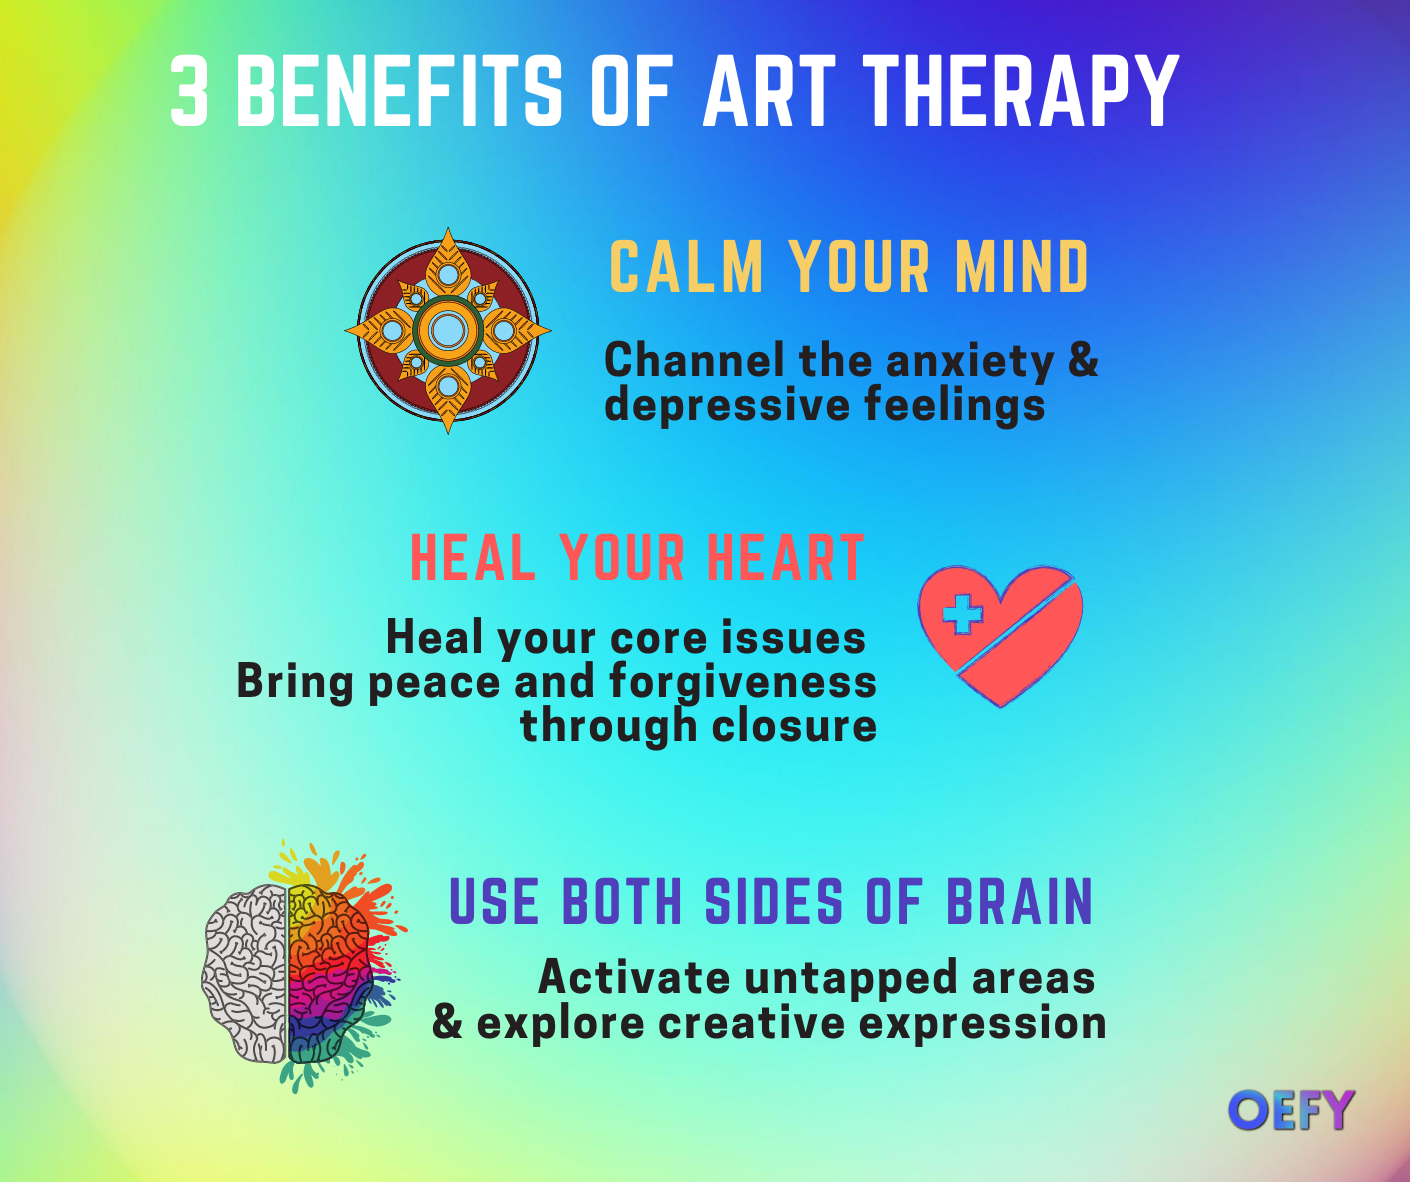 3 Benefits of Art Therapy Infographic